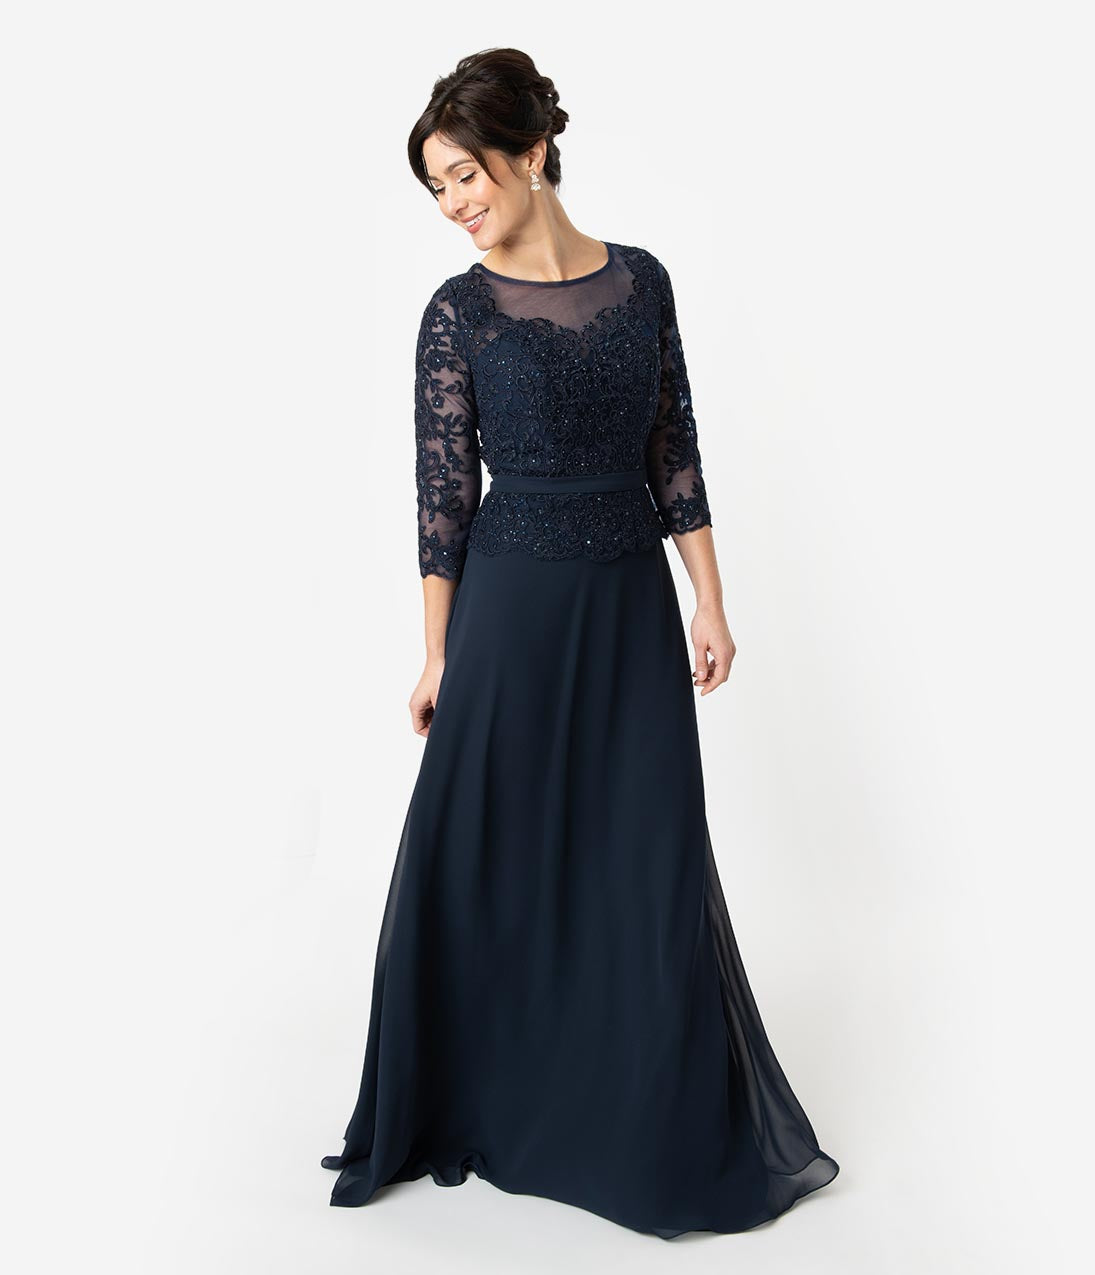 Vintage Evening Dresses and Formal Evening Gowns Navy Blue Embellished Chiffon Sleeved Peplum Modest Long Dress $172.00 AT vintagedancer.com